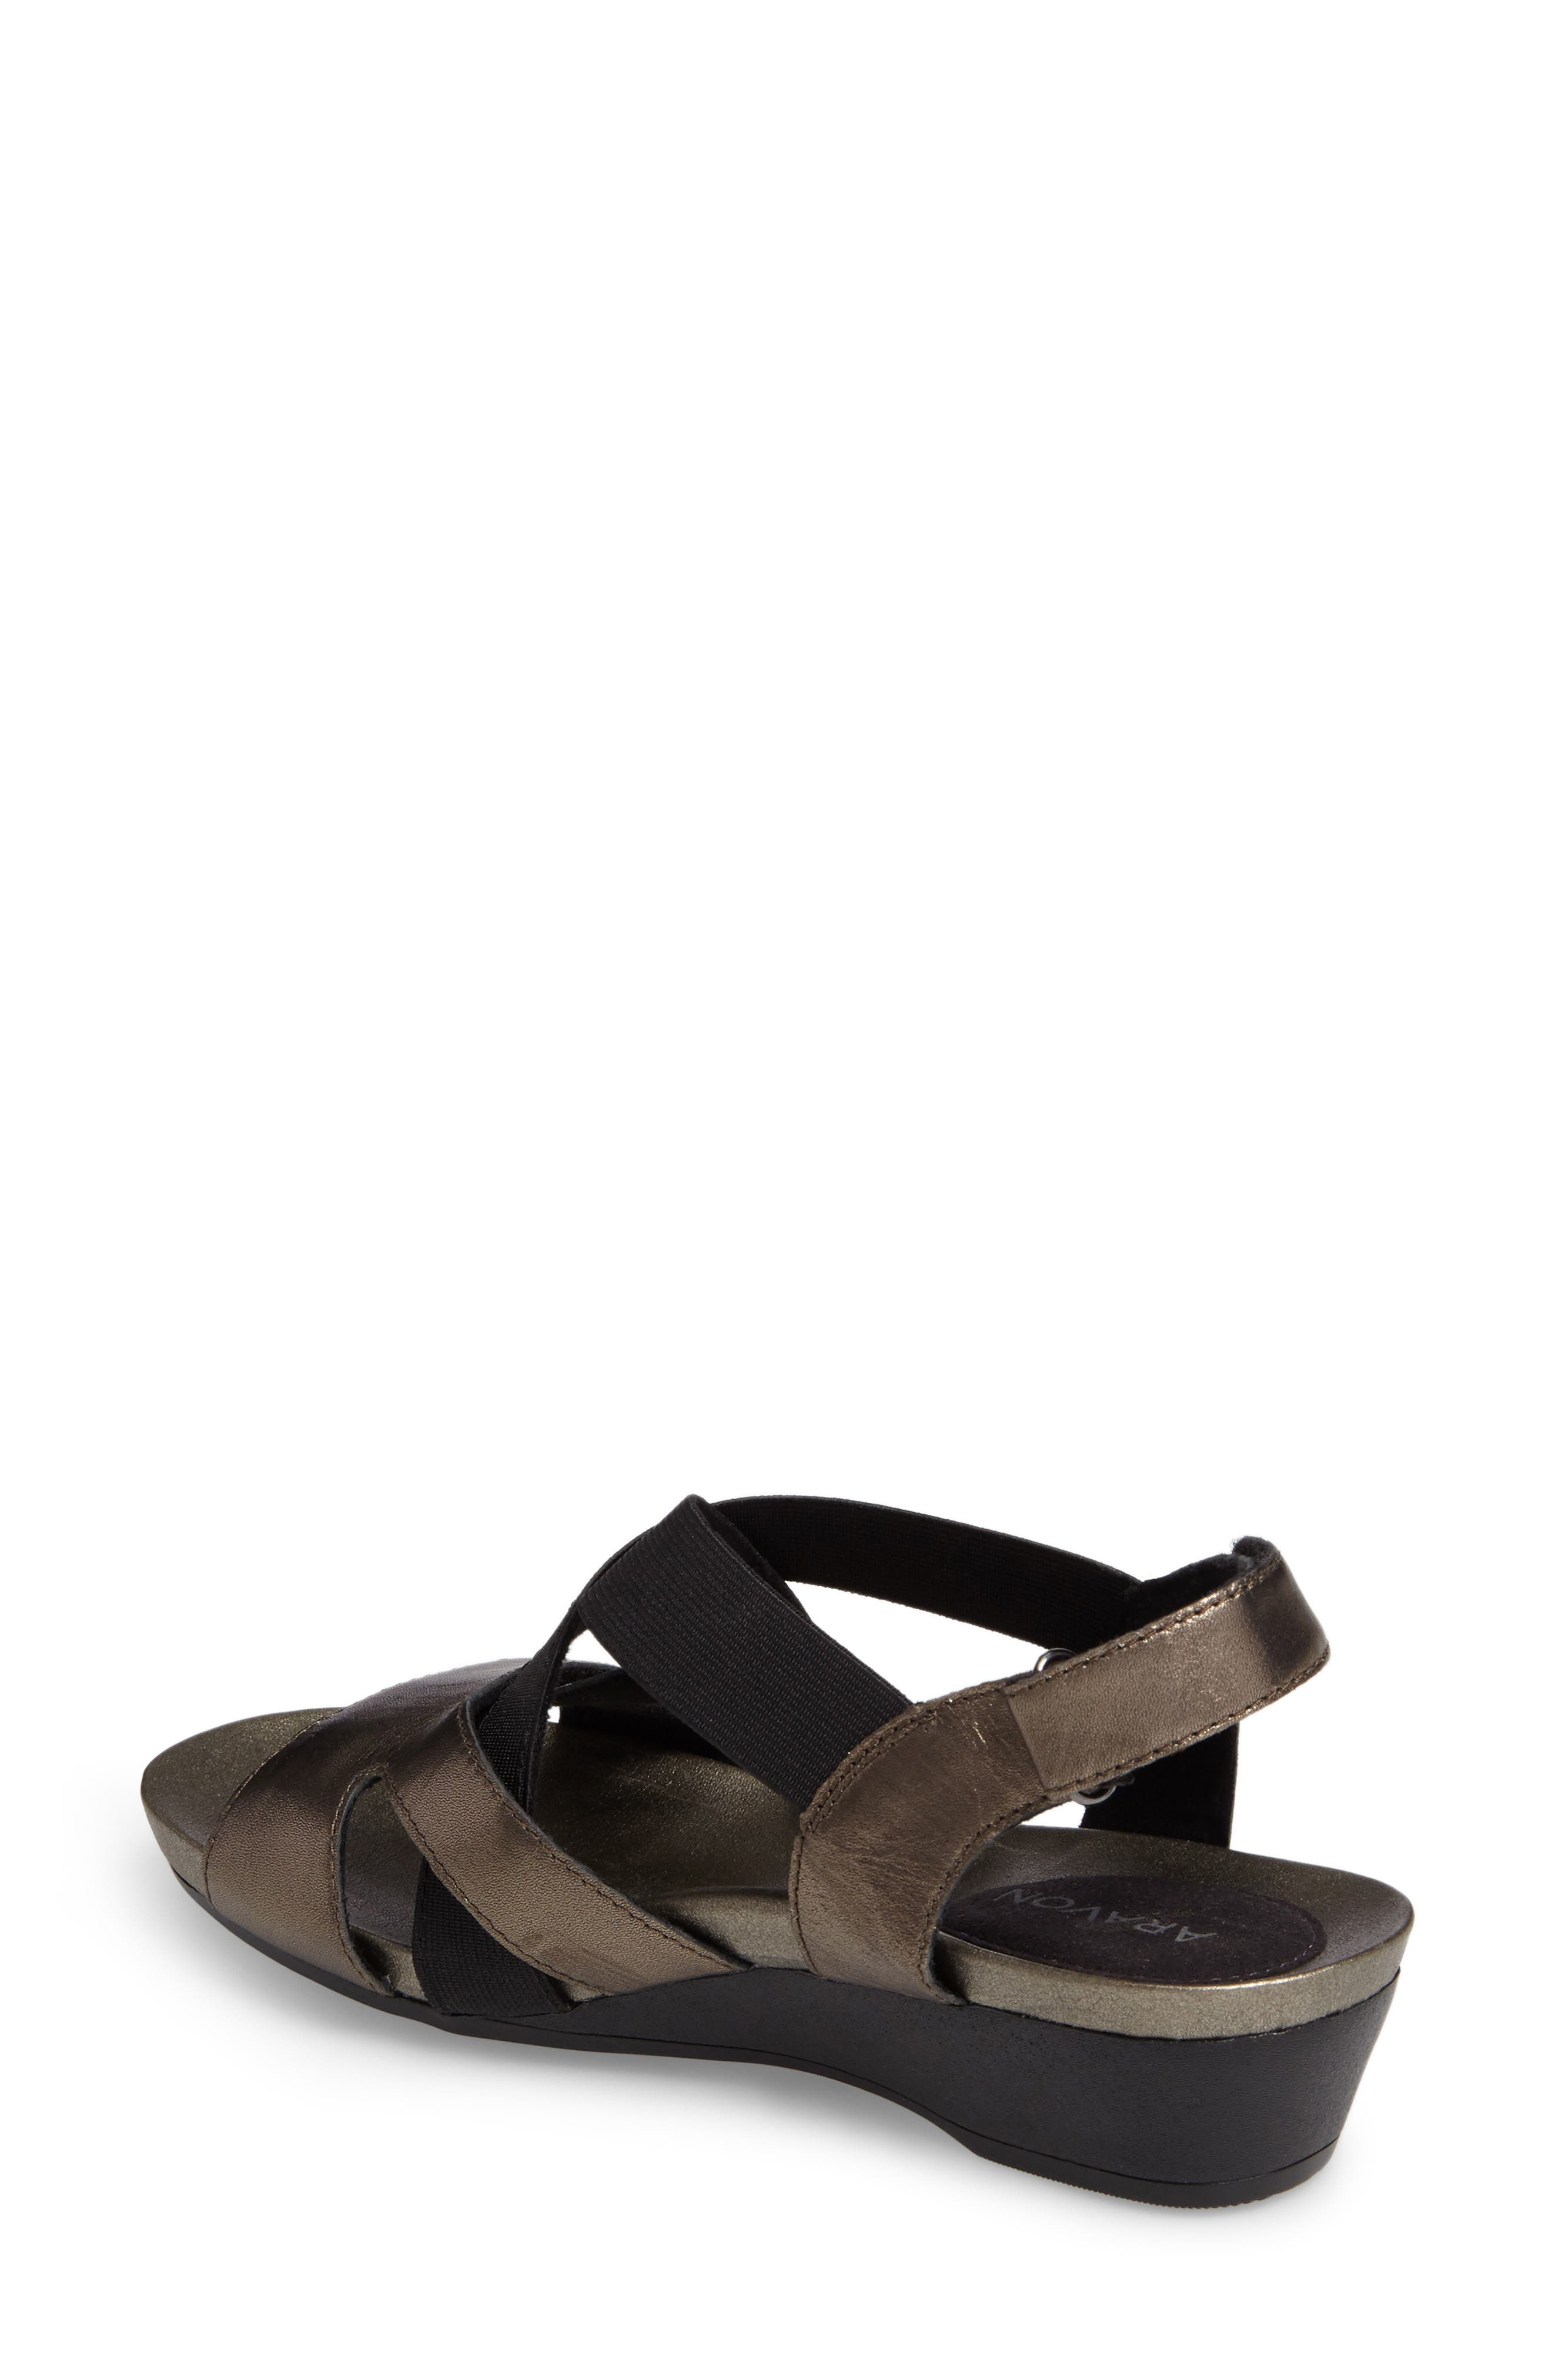 Standon Cross Strap Sandal,                             Alternate thumbnail 2, color,                             Pewter Fabric